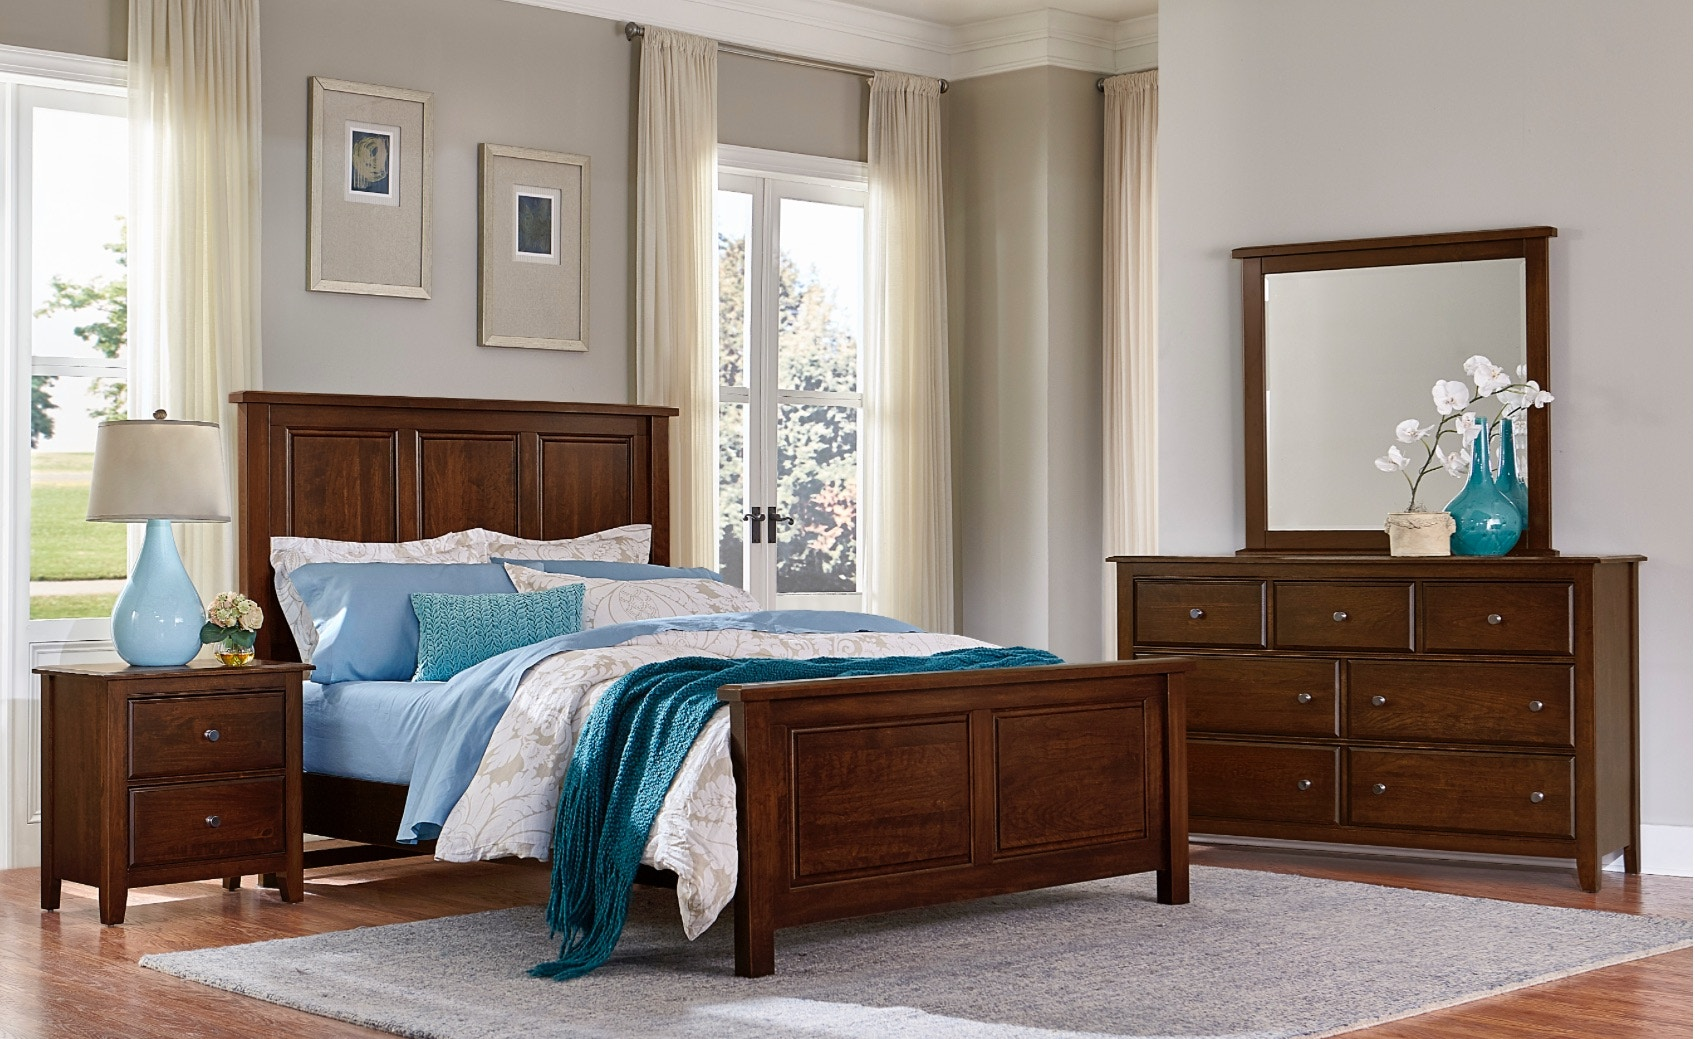 Please Allow An Appropriate Amount Of Time For A Response Depending On The  Time Of Day. Artisan U0026 Post Loft Bedroom Set Vaughan Bassett Furniture  Company